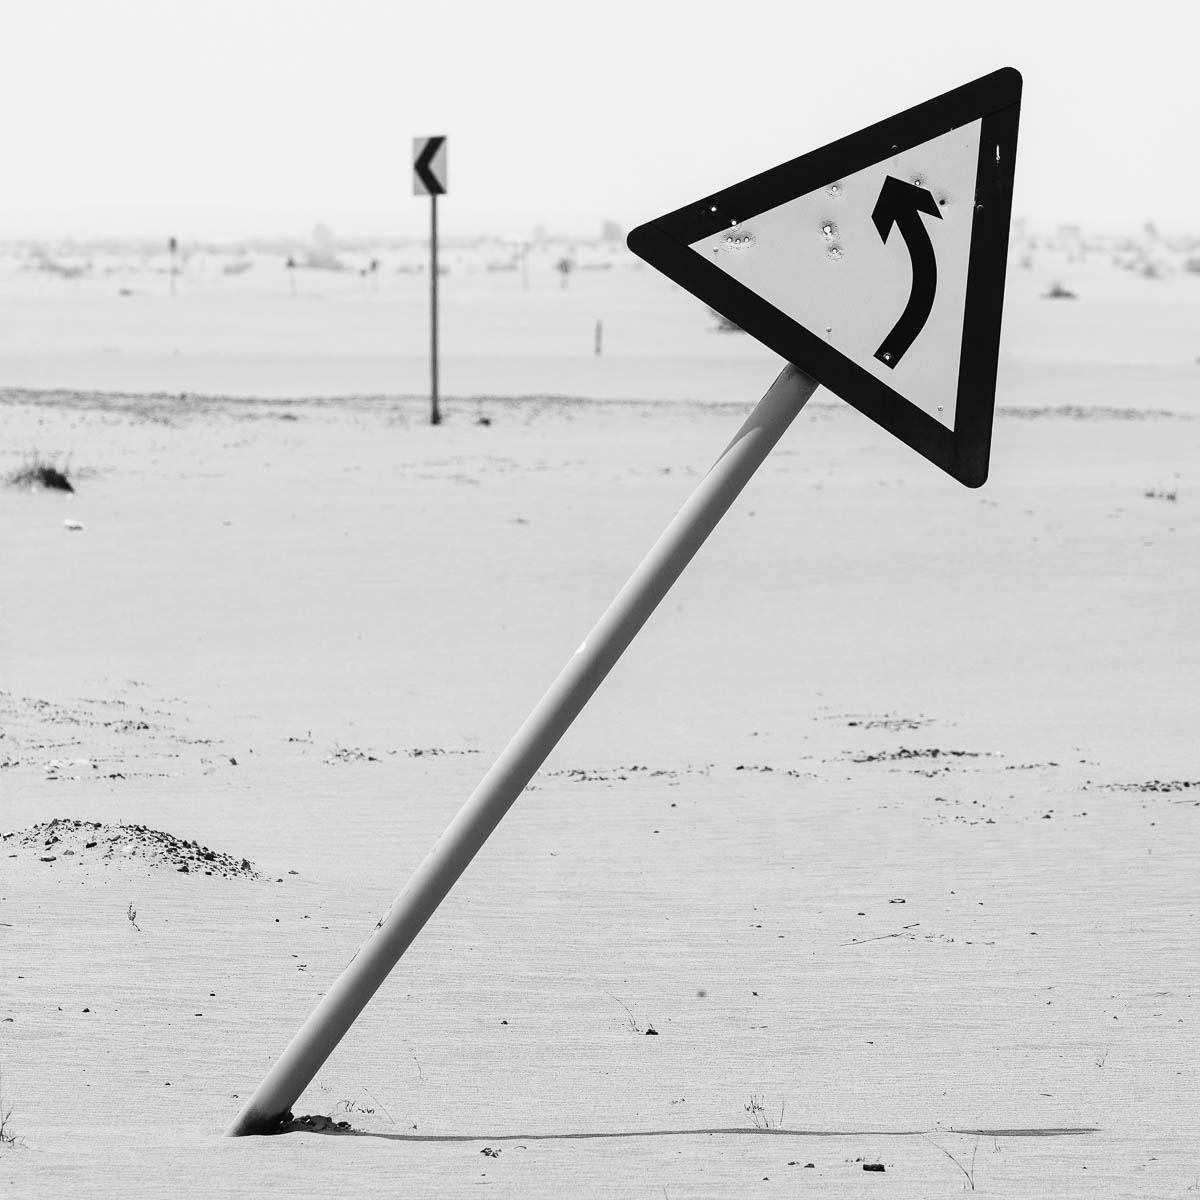 A road sign in the desert used as target practice, Dubai, UAE